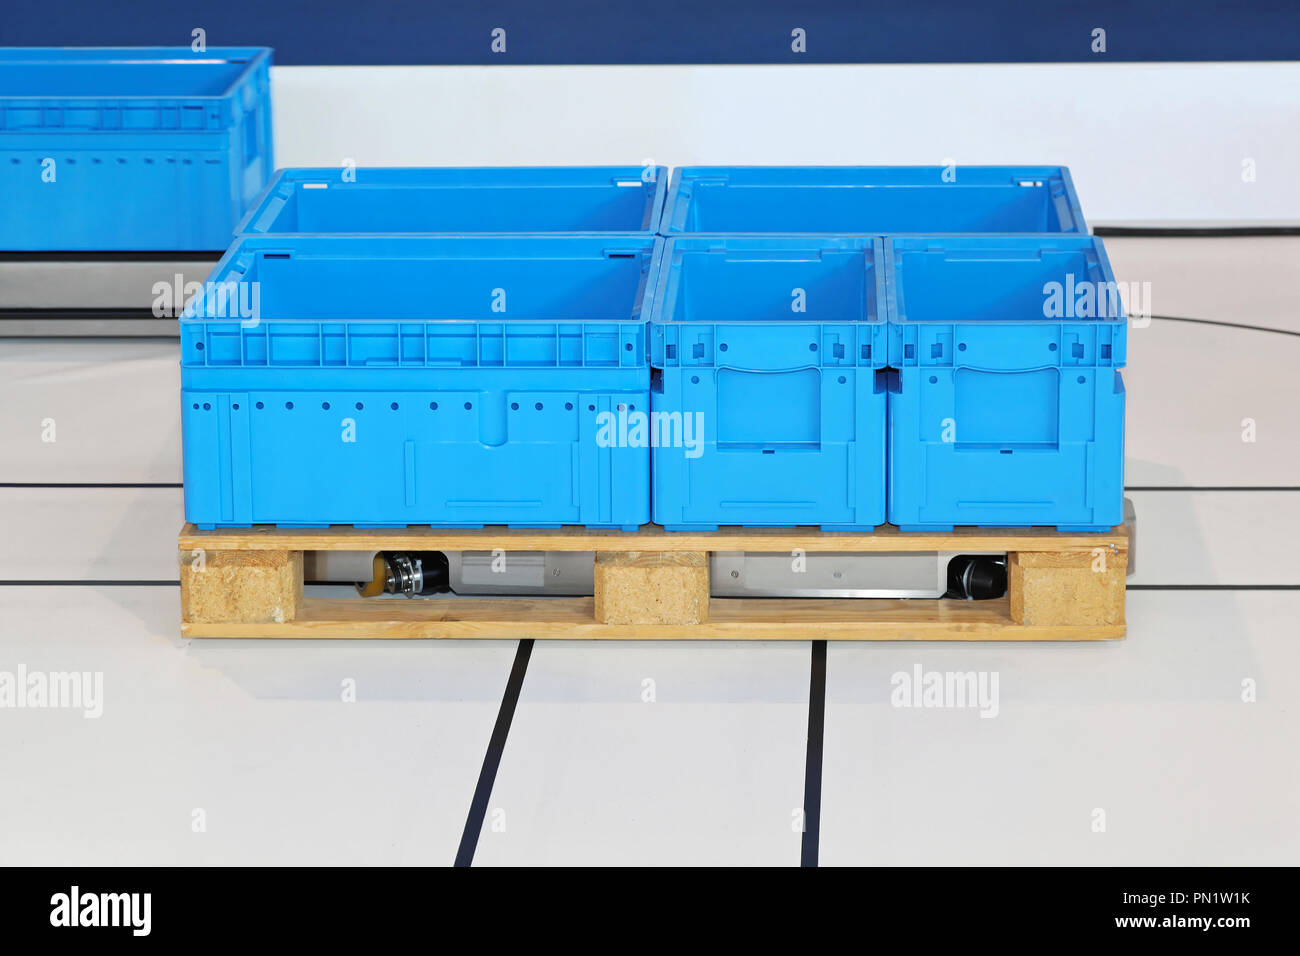 Automated Guided Vehicle Stock Photos Amp Automated Guided